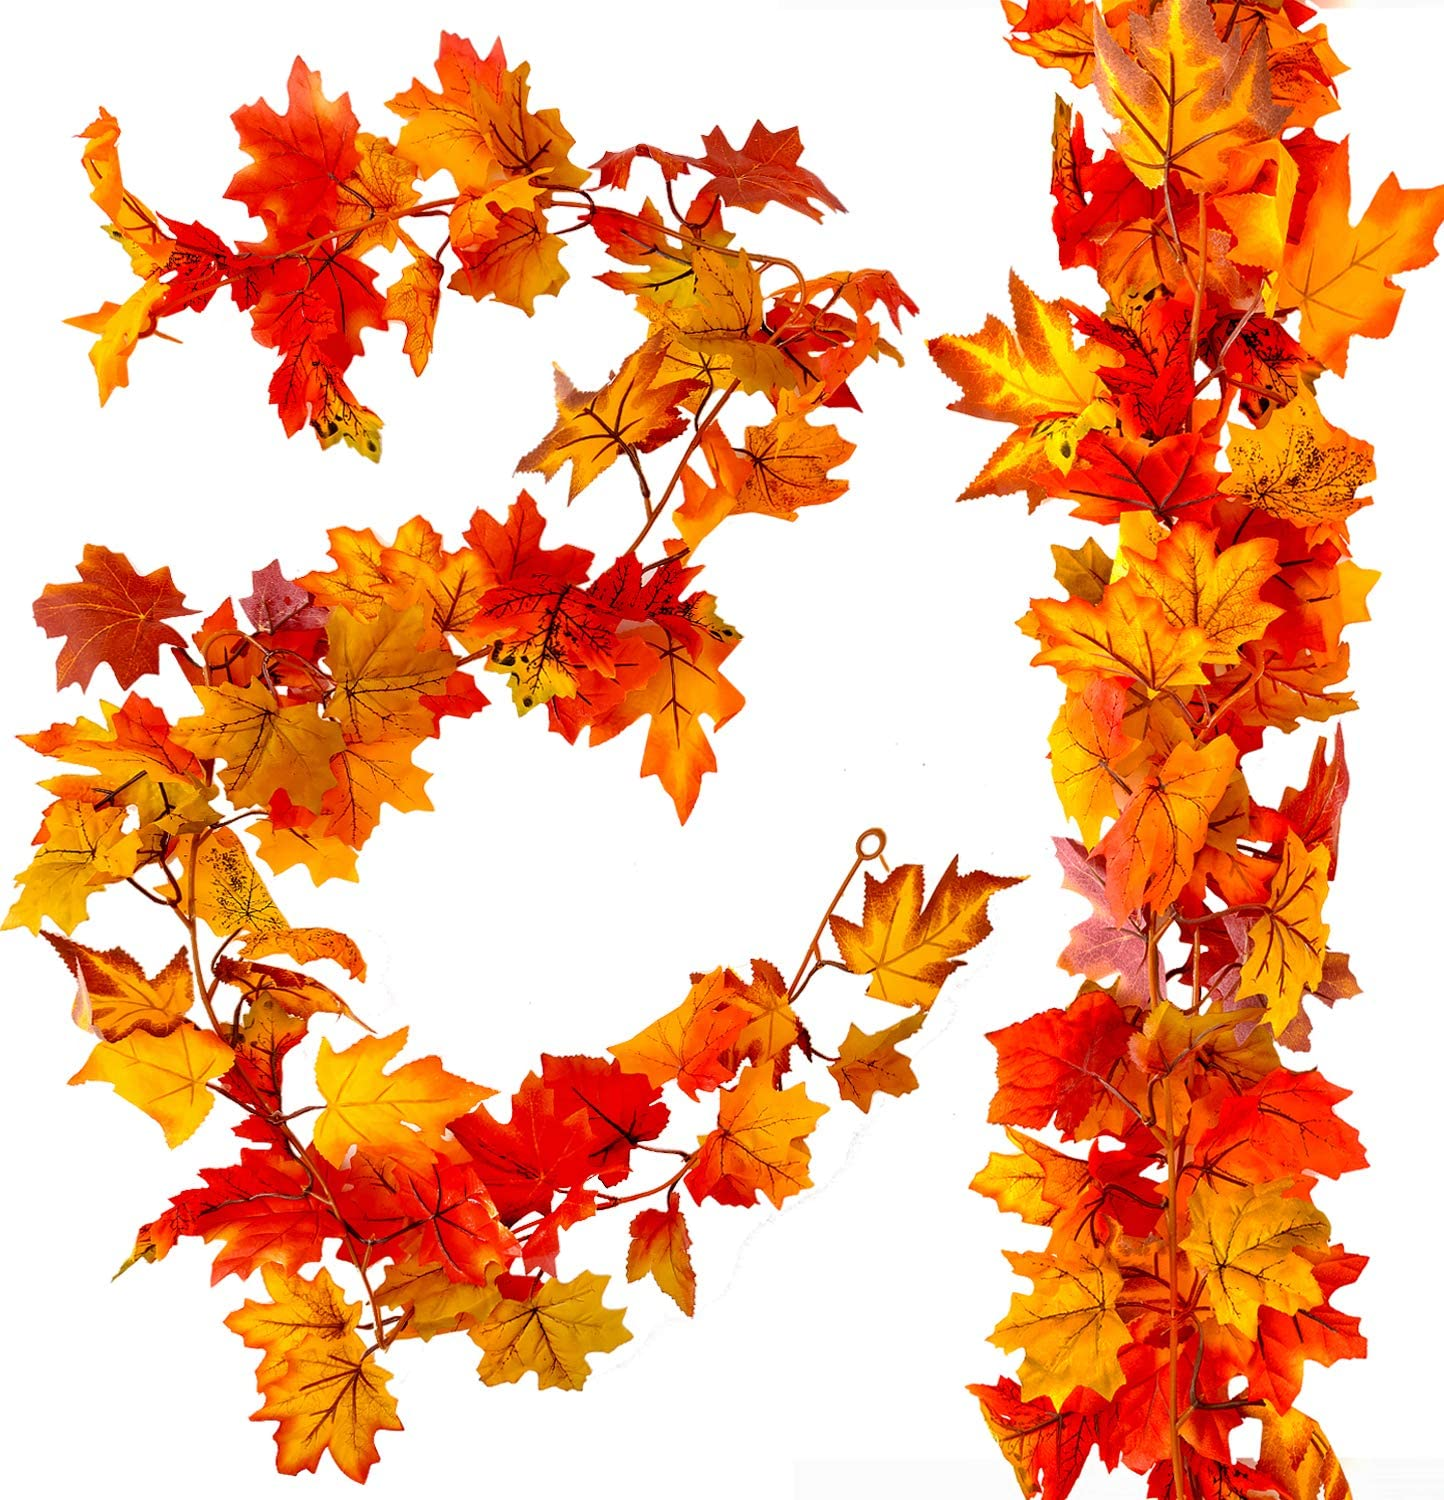 MoonLa 2 Pcs Artificial Autumn Fall Maple Leaves Garland 5.9ft Fall Hanging Vines Plant Thanksgiving Decor for Indoor Outdoor Wedding Party Home Fireplace Halloween Christmas Decorations